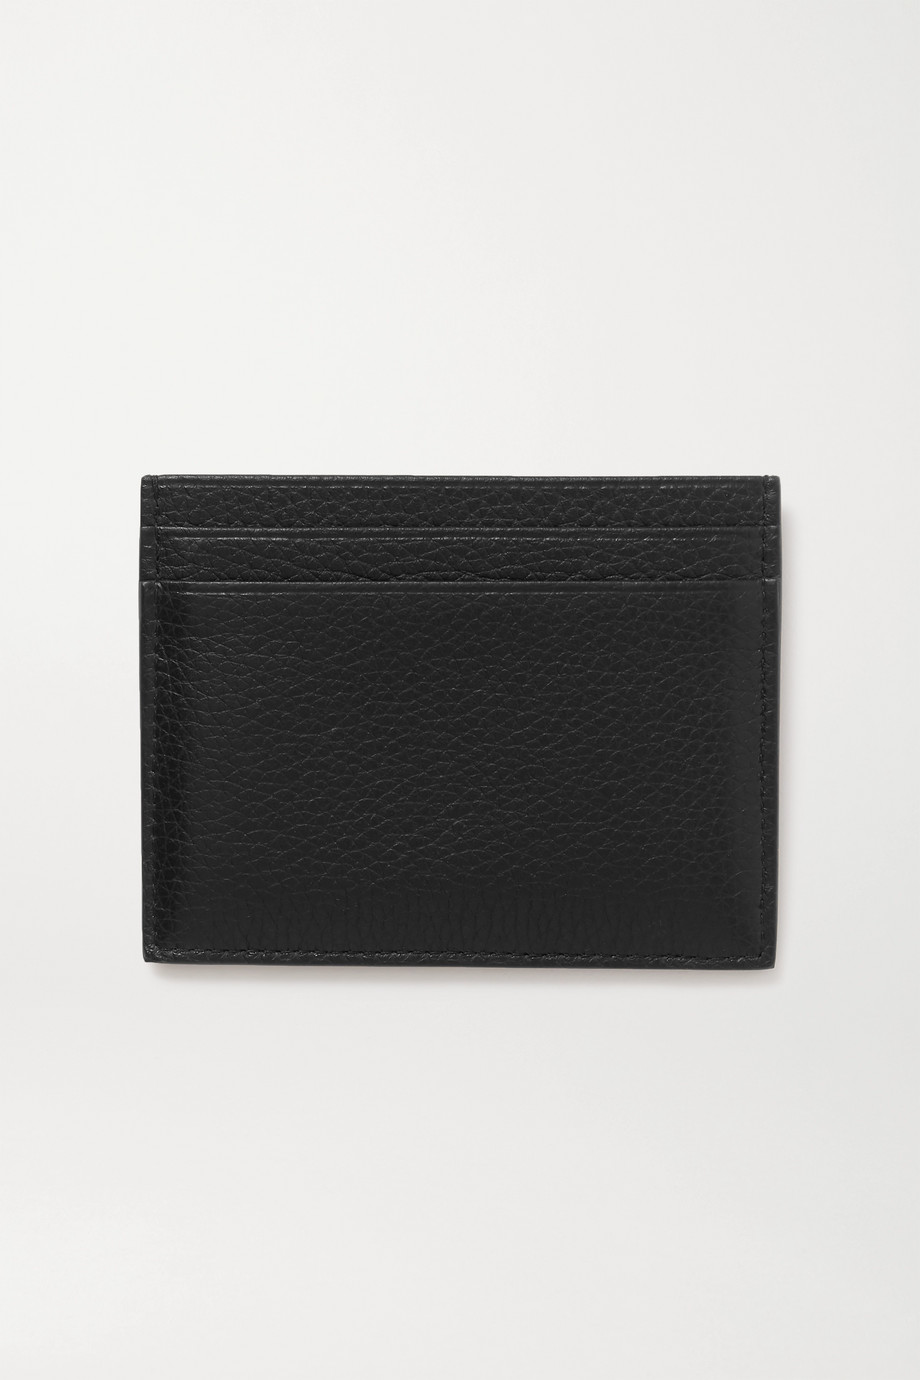 CHRISTIAN LOUBOUTIN Rubber-trimmed textured-leather cardholder